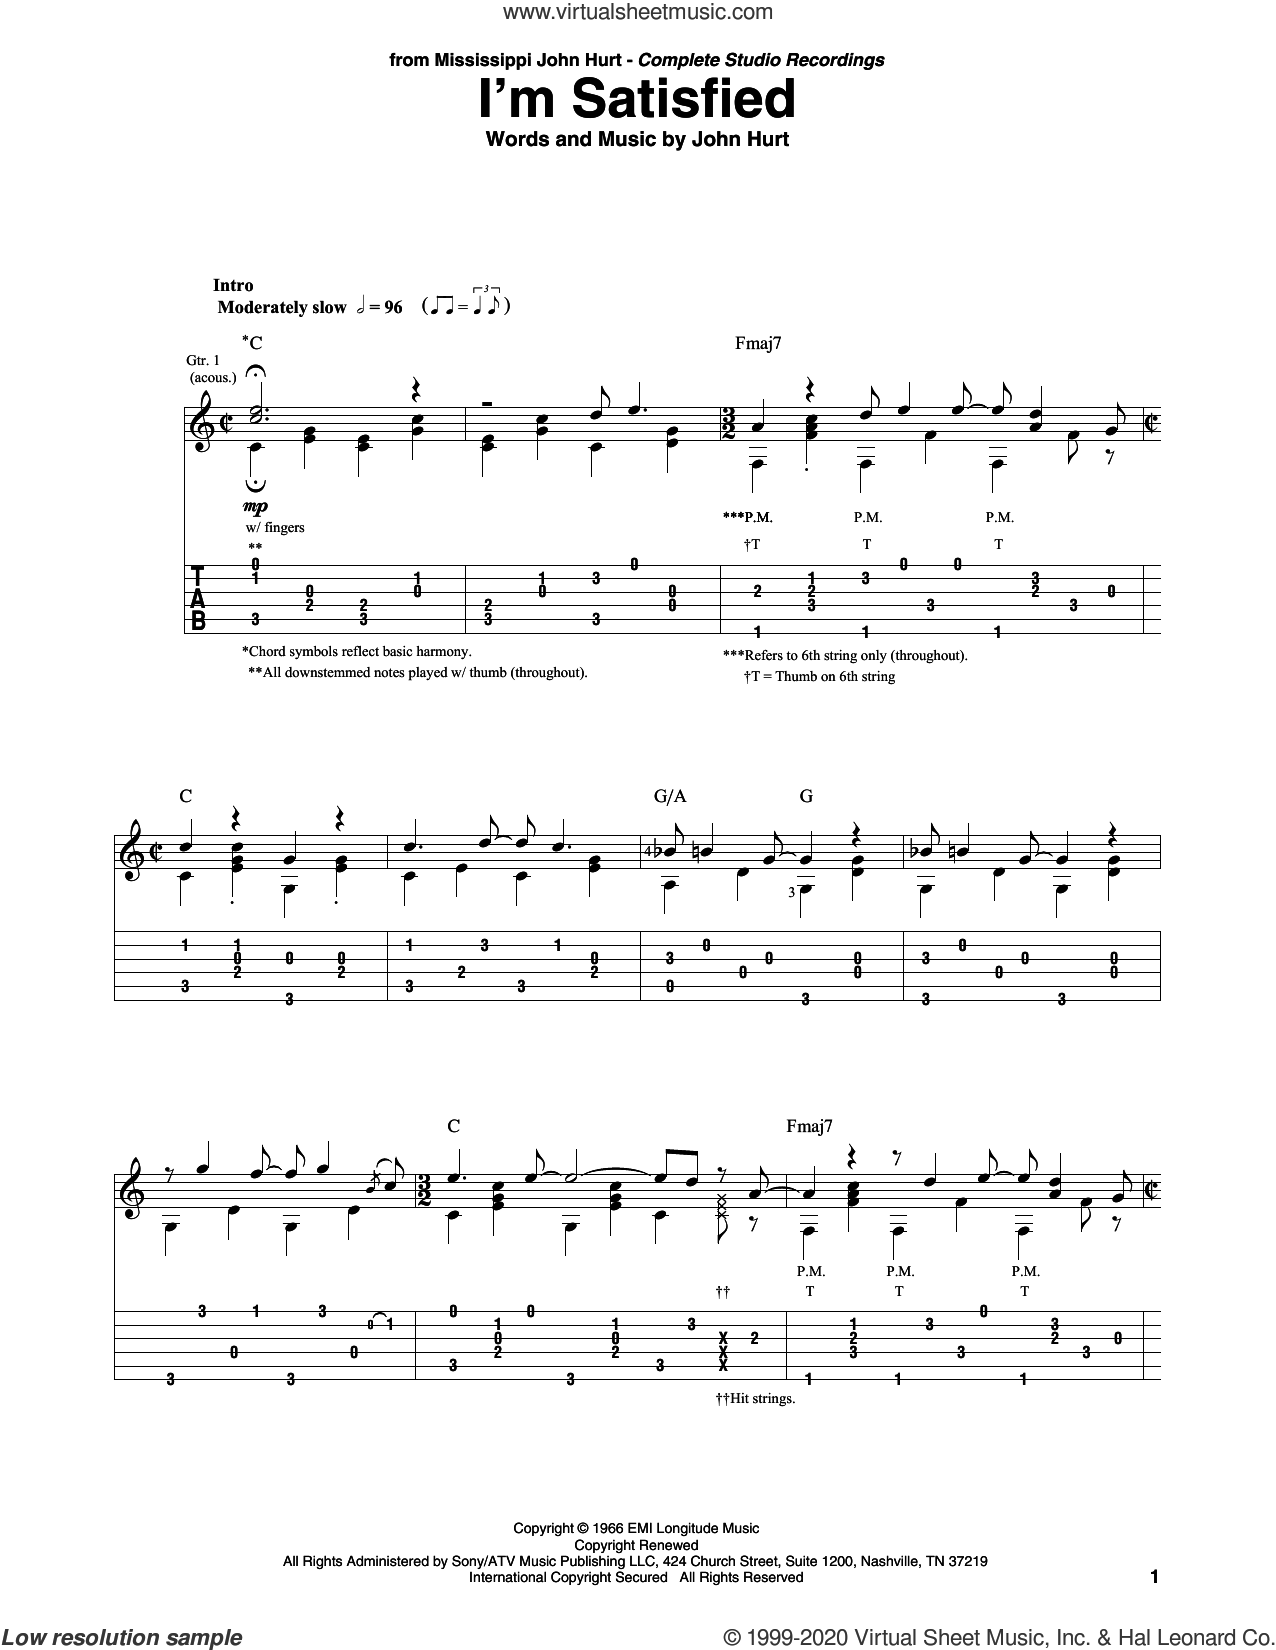 I'm Satisfied sheet music for guitar solo by John Hurt and Mississippi John Hurt, intermediate skill level